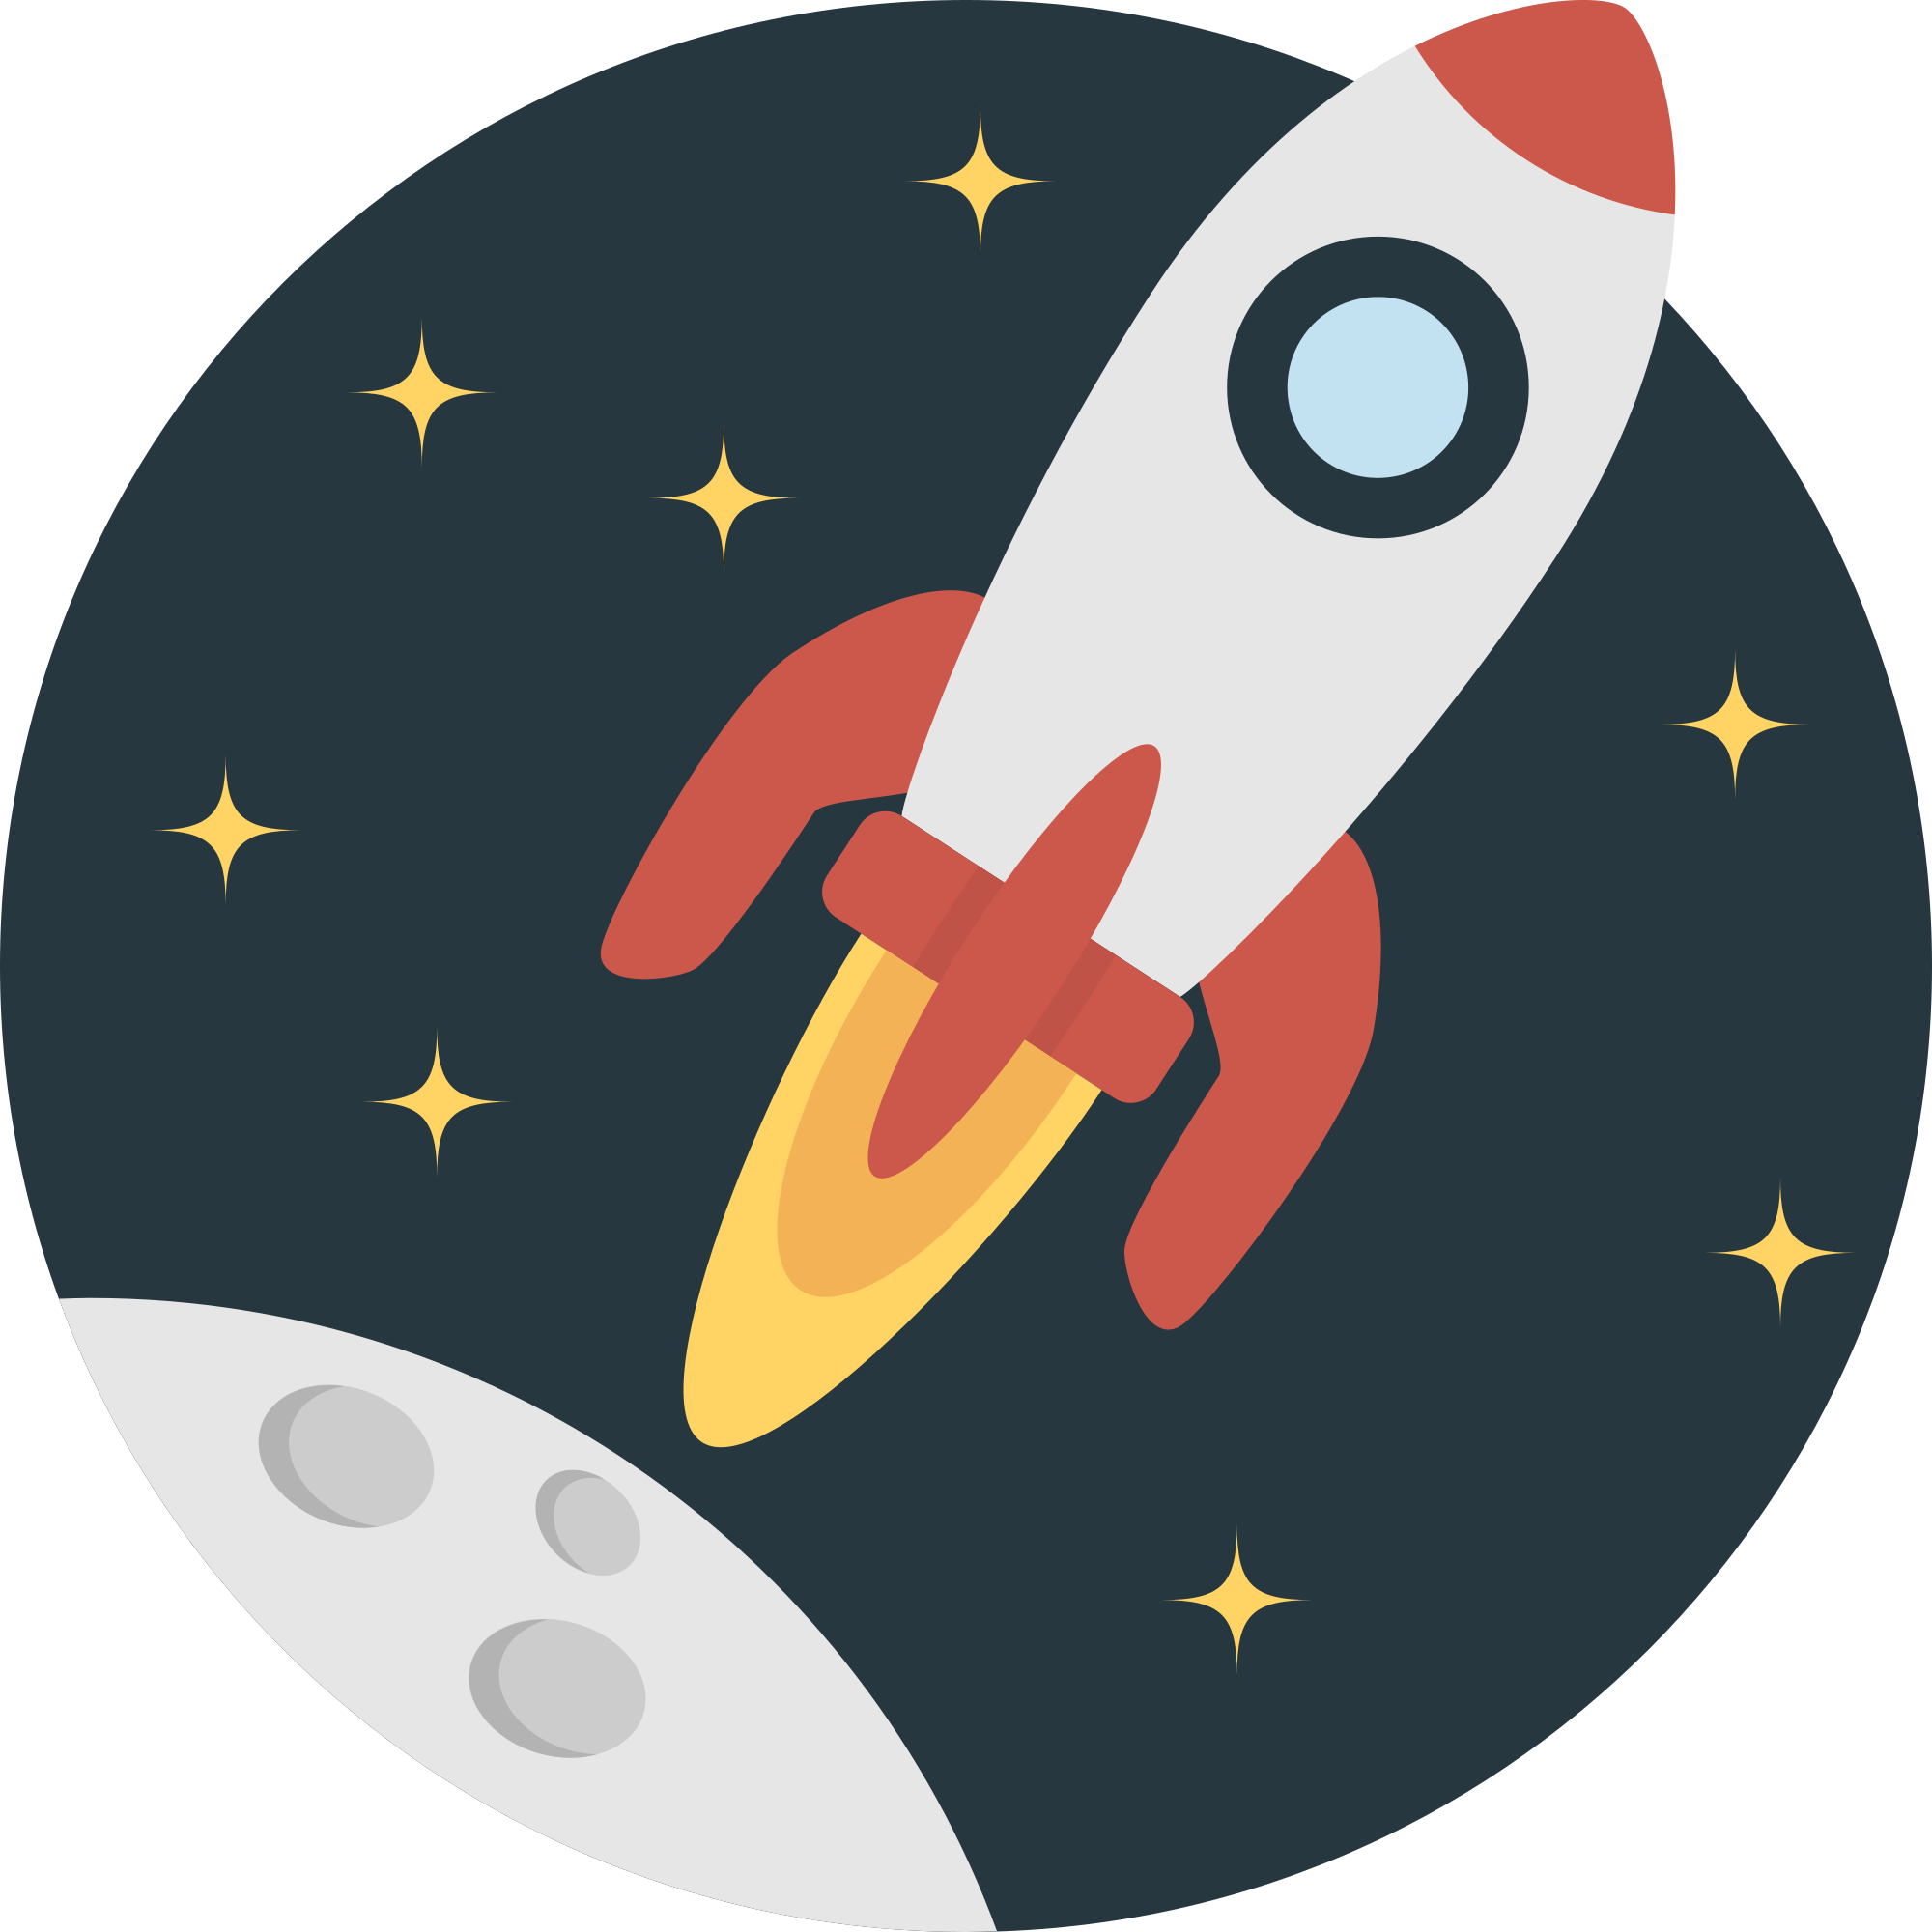 Rocket svg #133, Download drawings